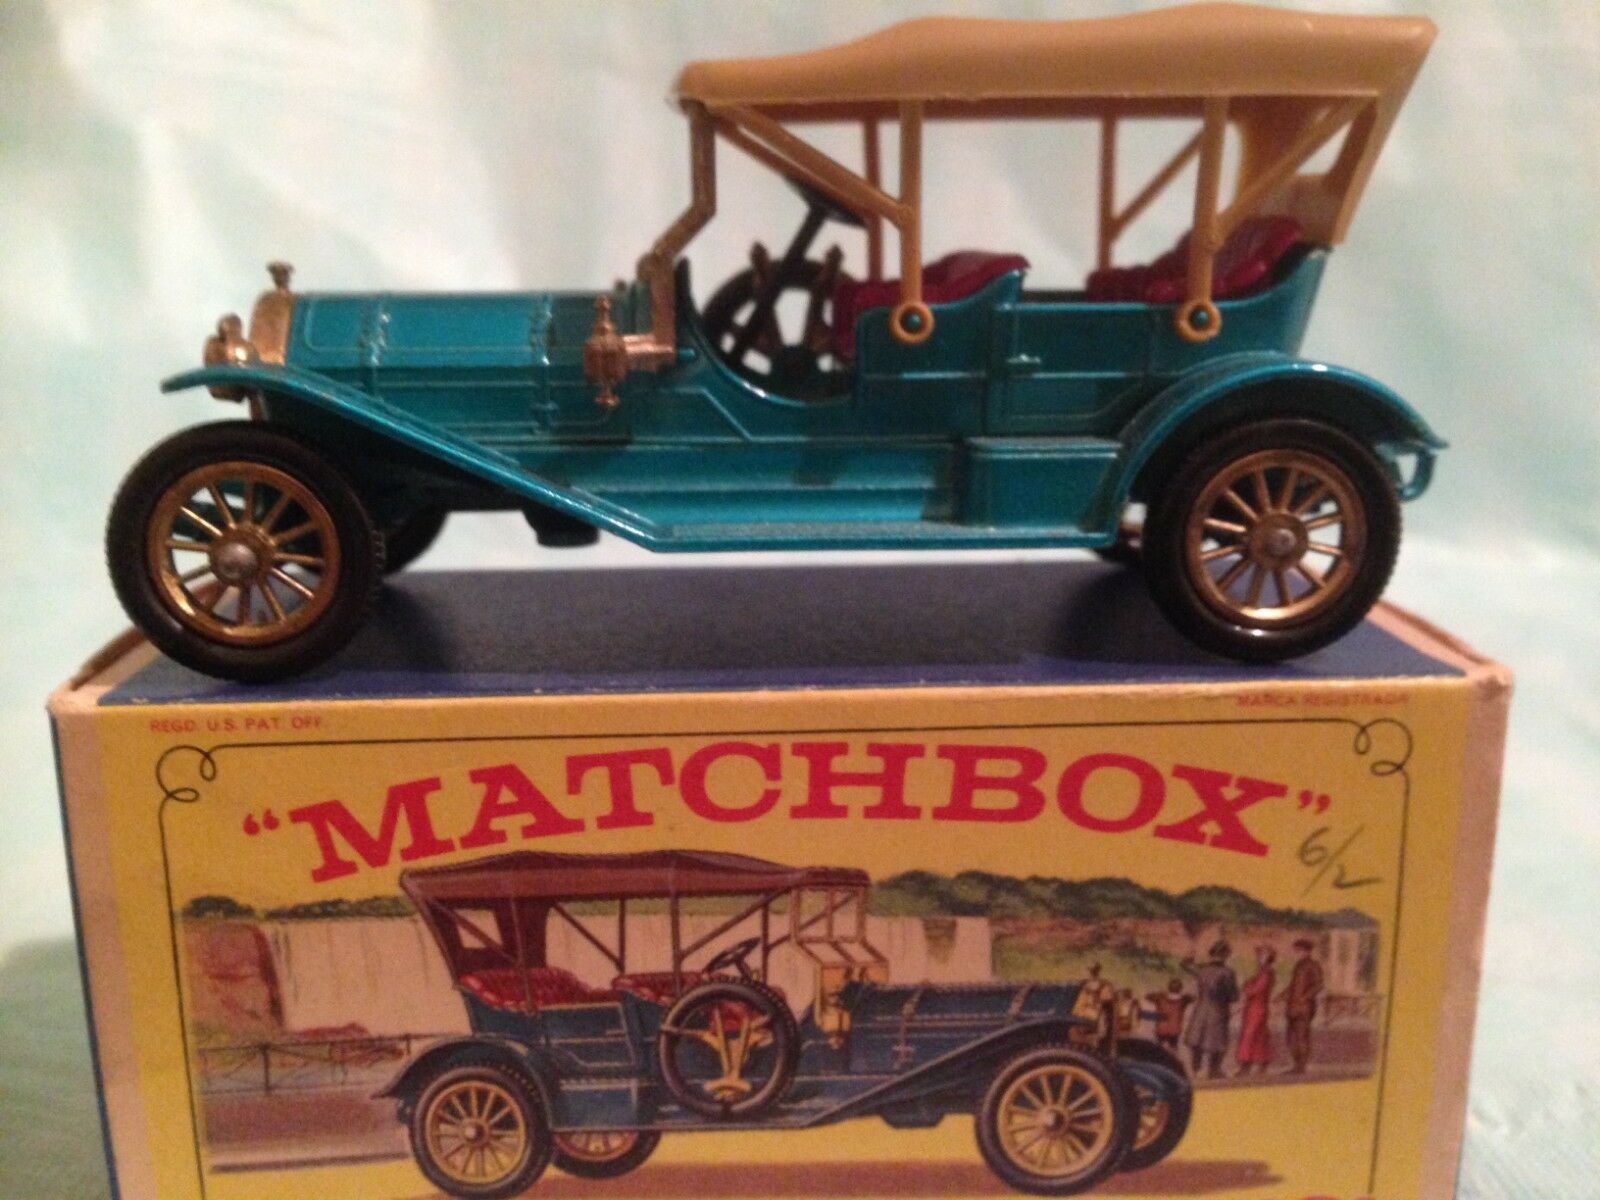 Matchbox Series Models of Yesteryear No Y-121909 Thomas Flyabout